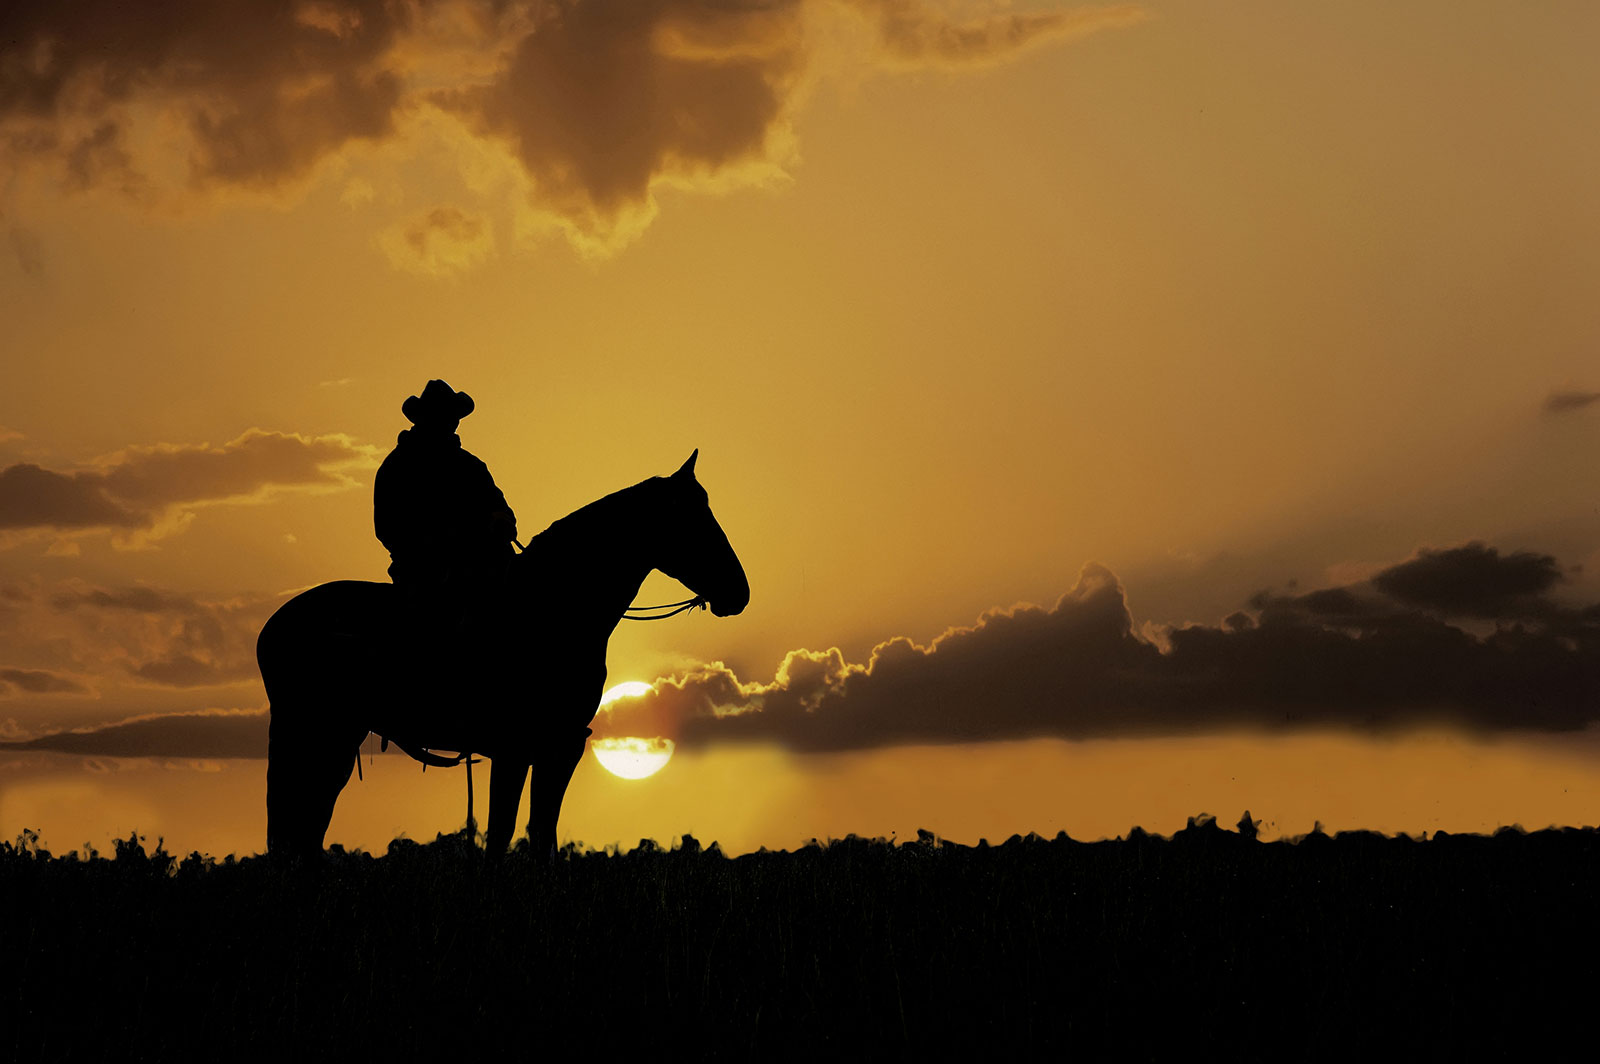 Western Horse and Rider at Sunset